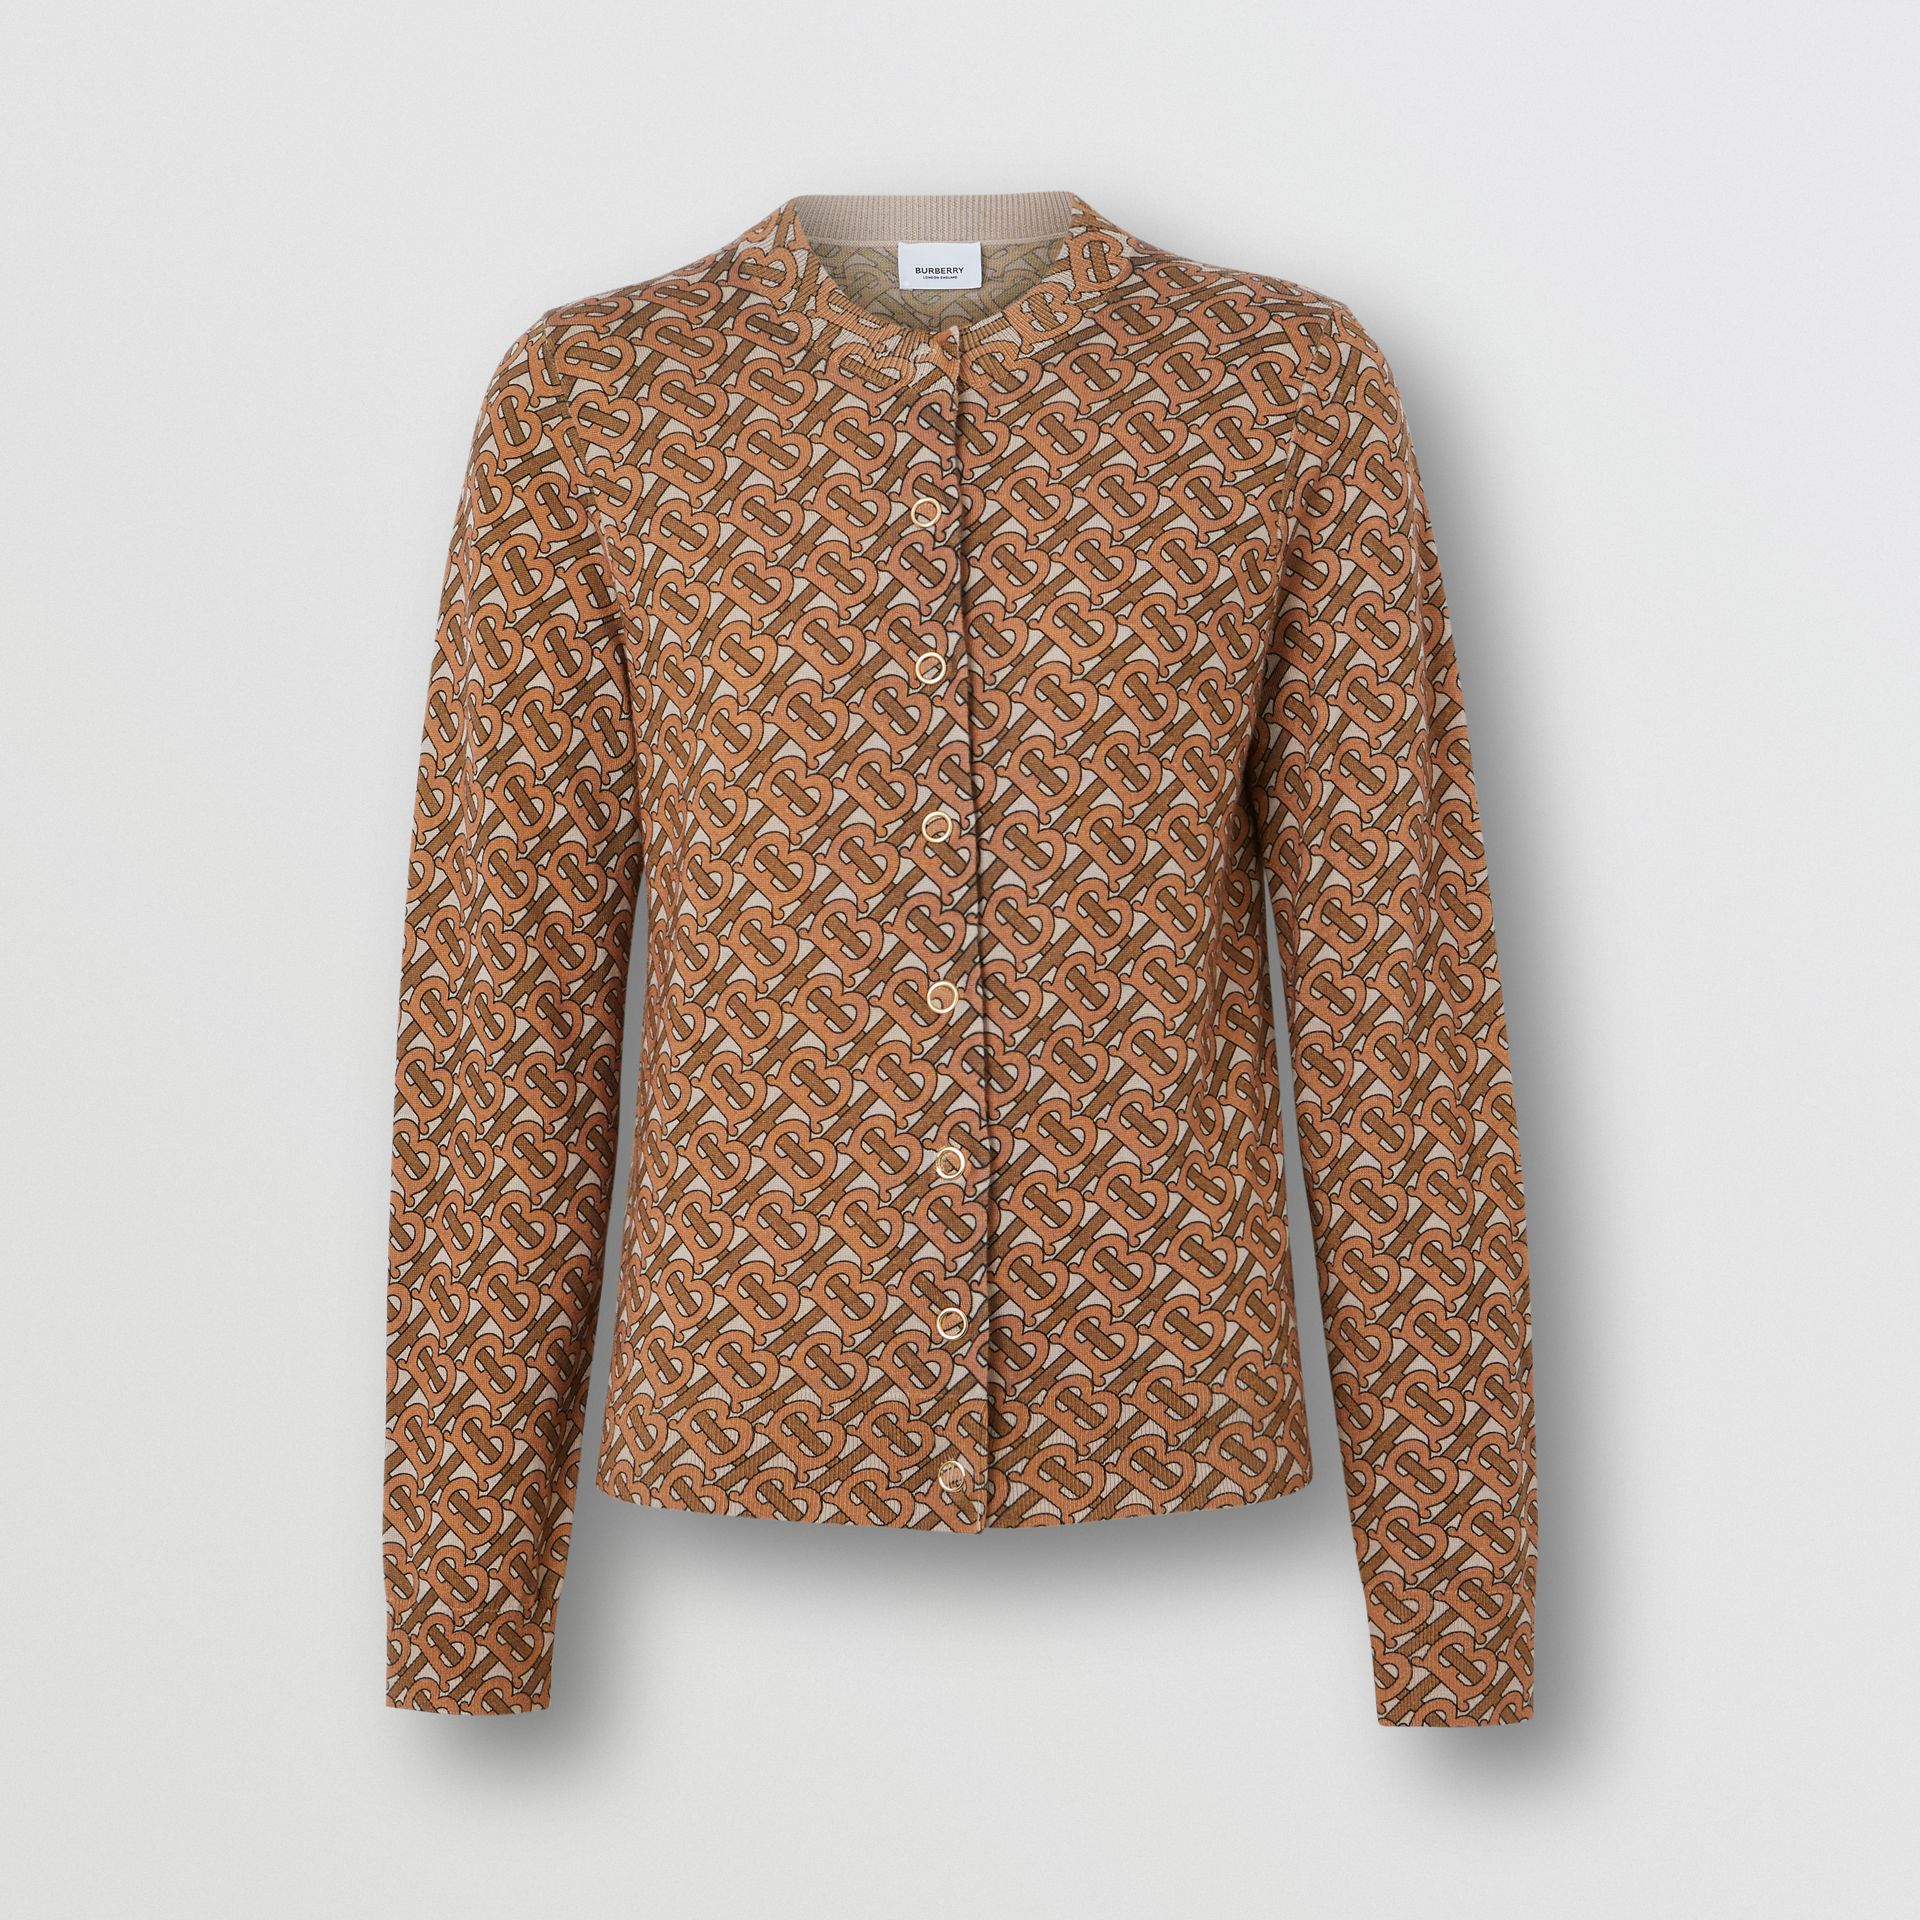 Monogram Print Merino Wool Cardigan in Beige - Women | Burberry Singapore - gallery image 3